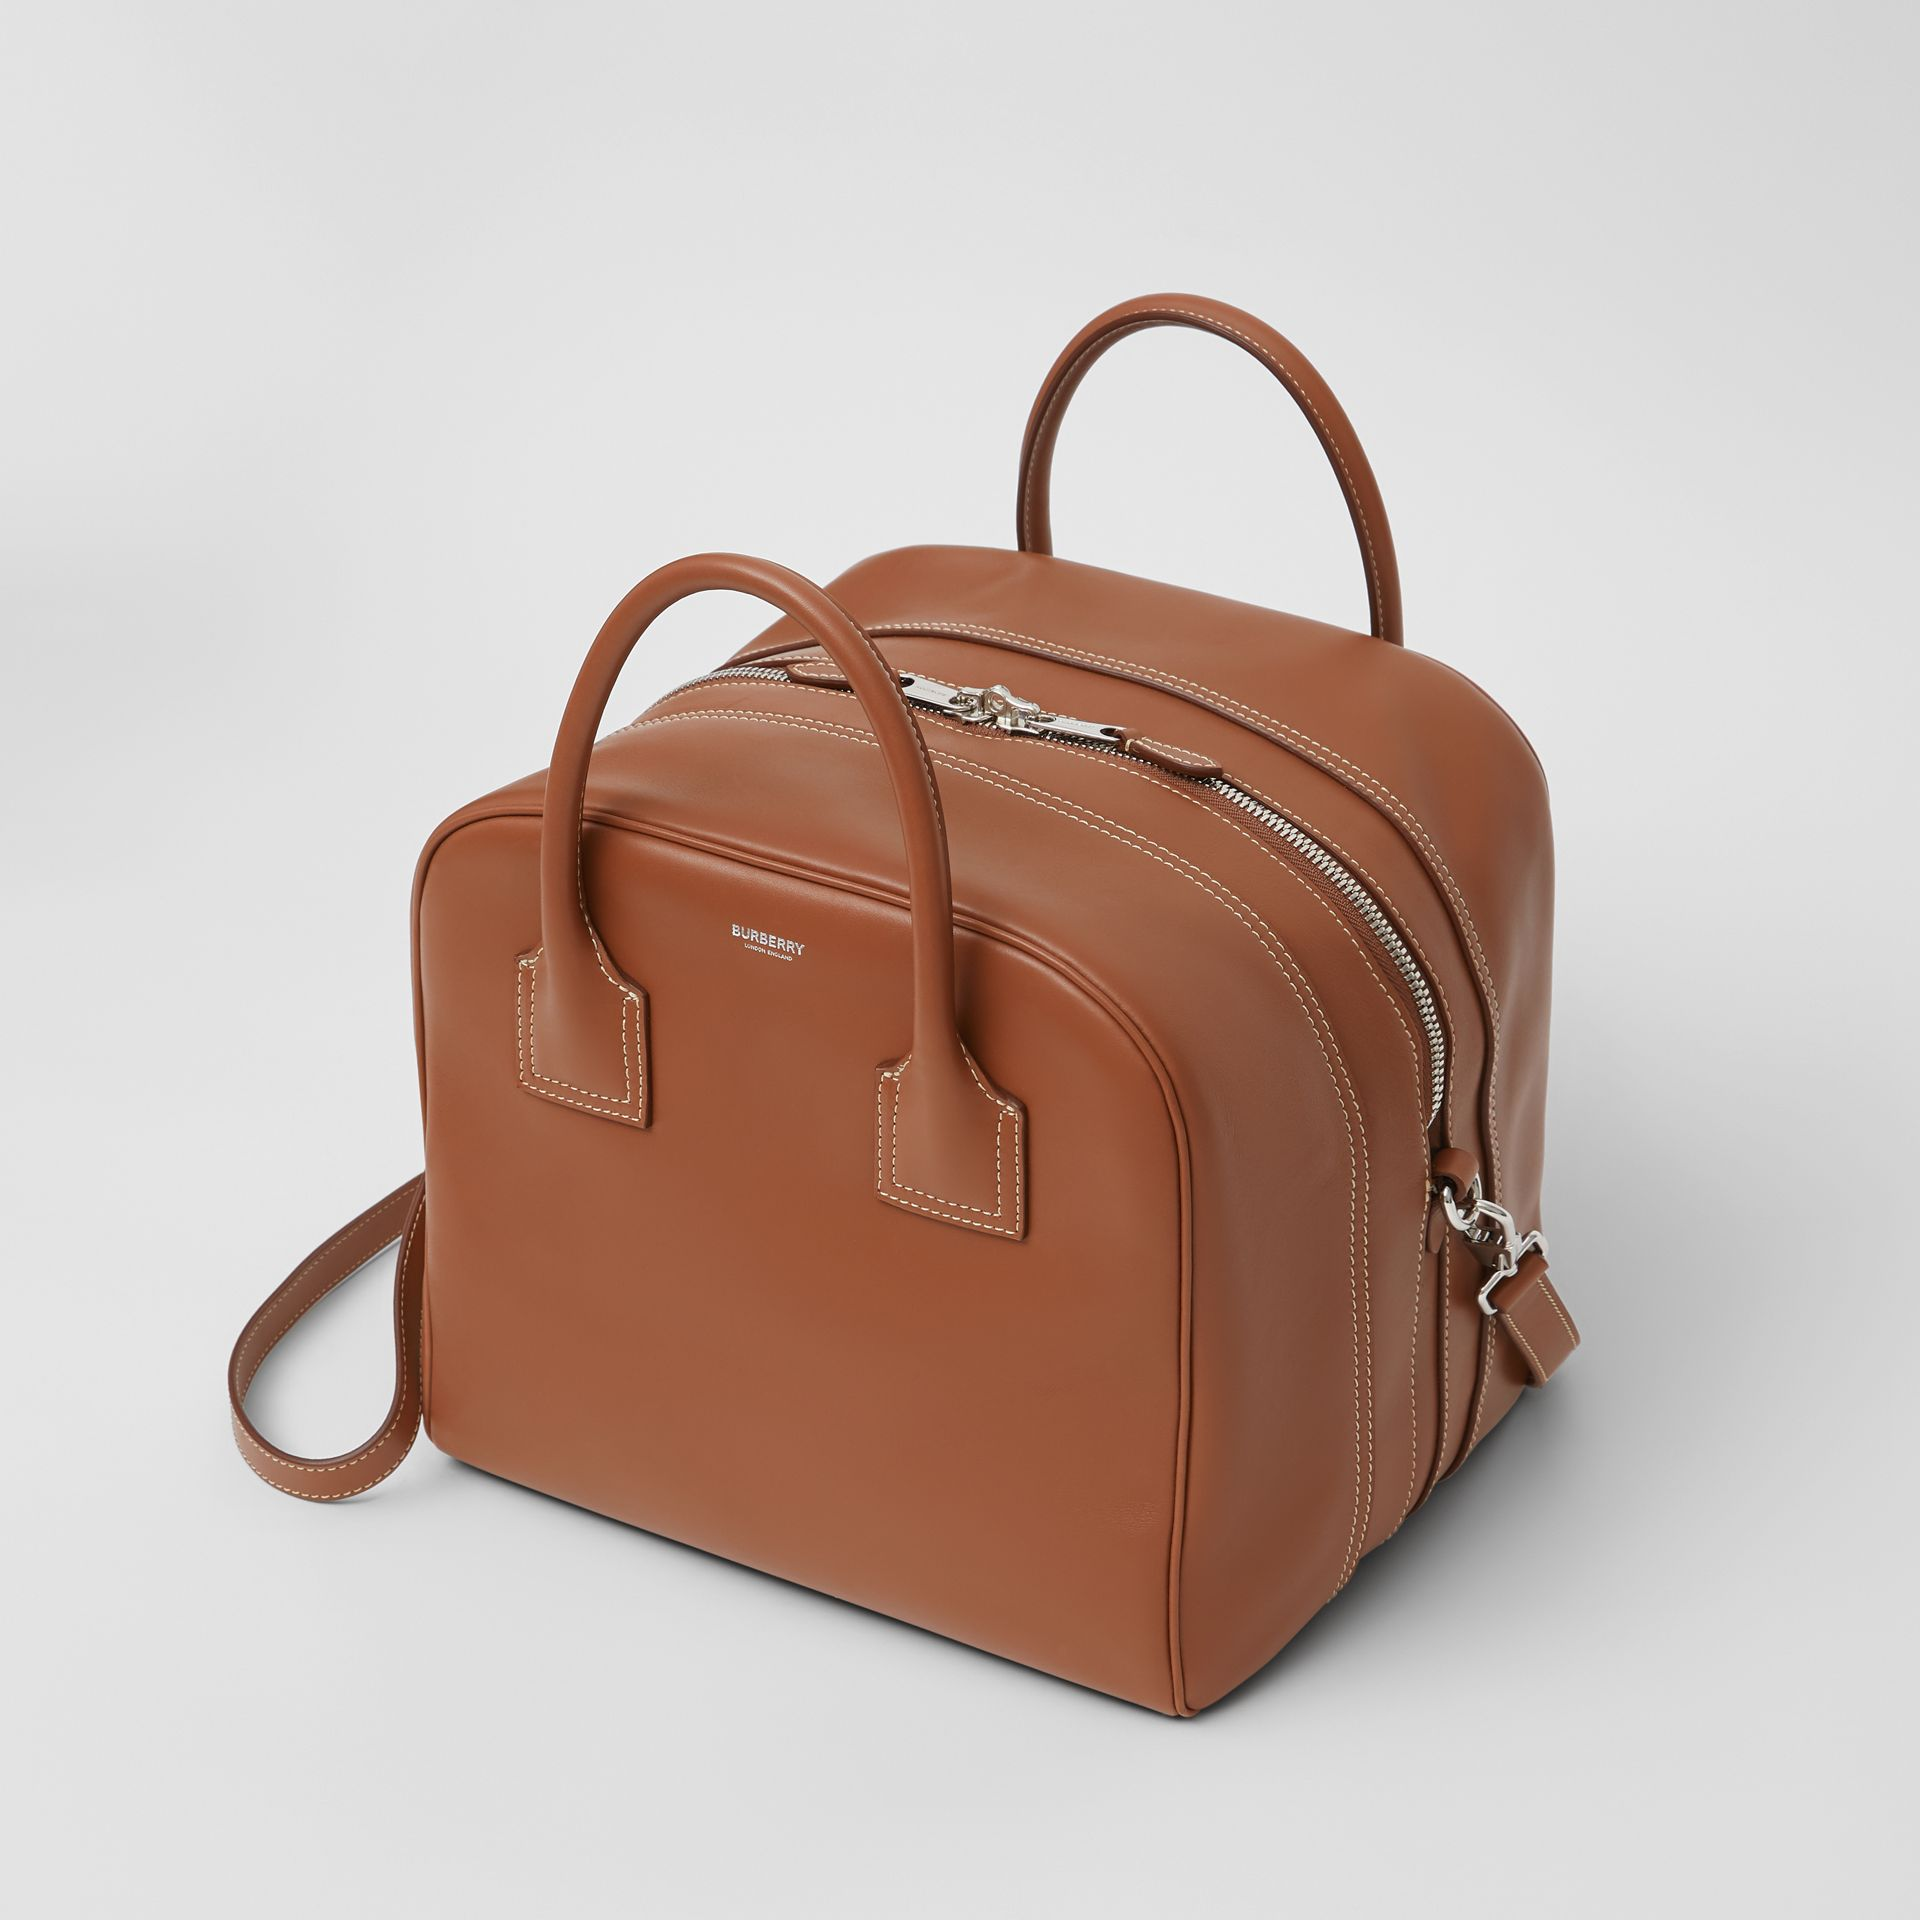 Medium Leather Cube Bag in Malt Brown - Women | Burberry United Kingdom - gallery image 3